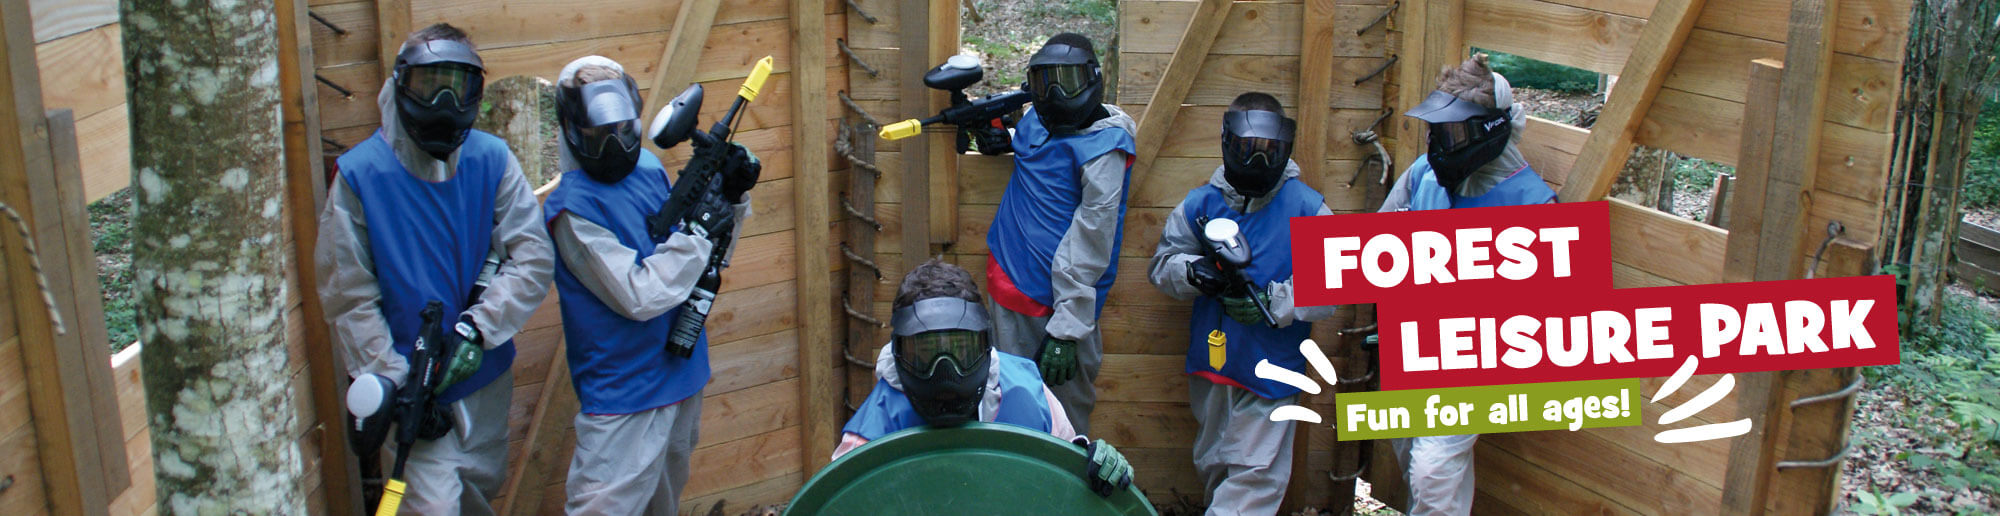 paintball-millau-rodez-pareloup-forest